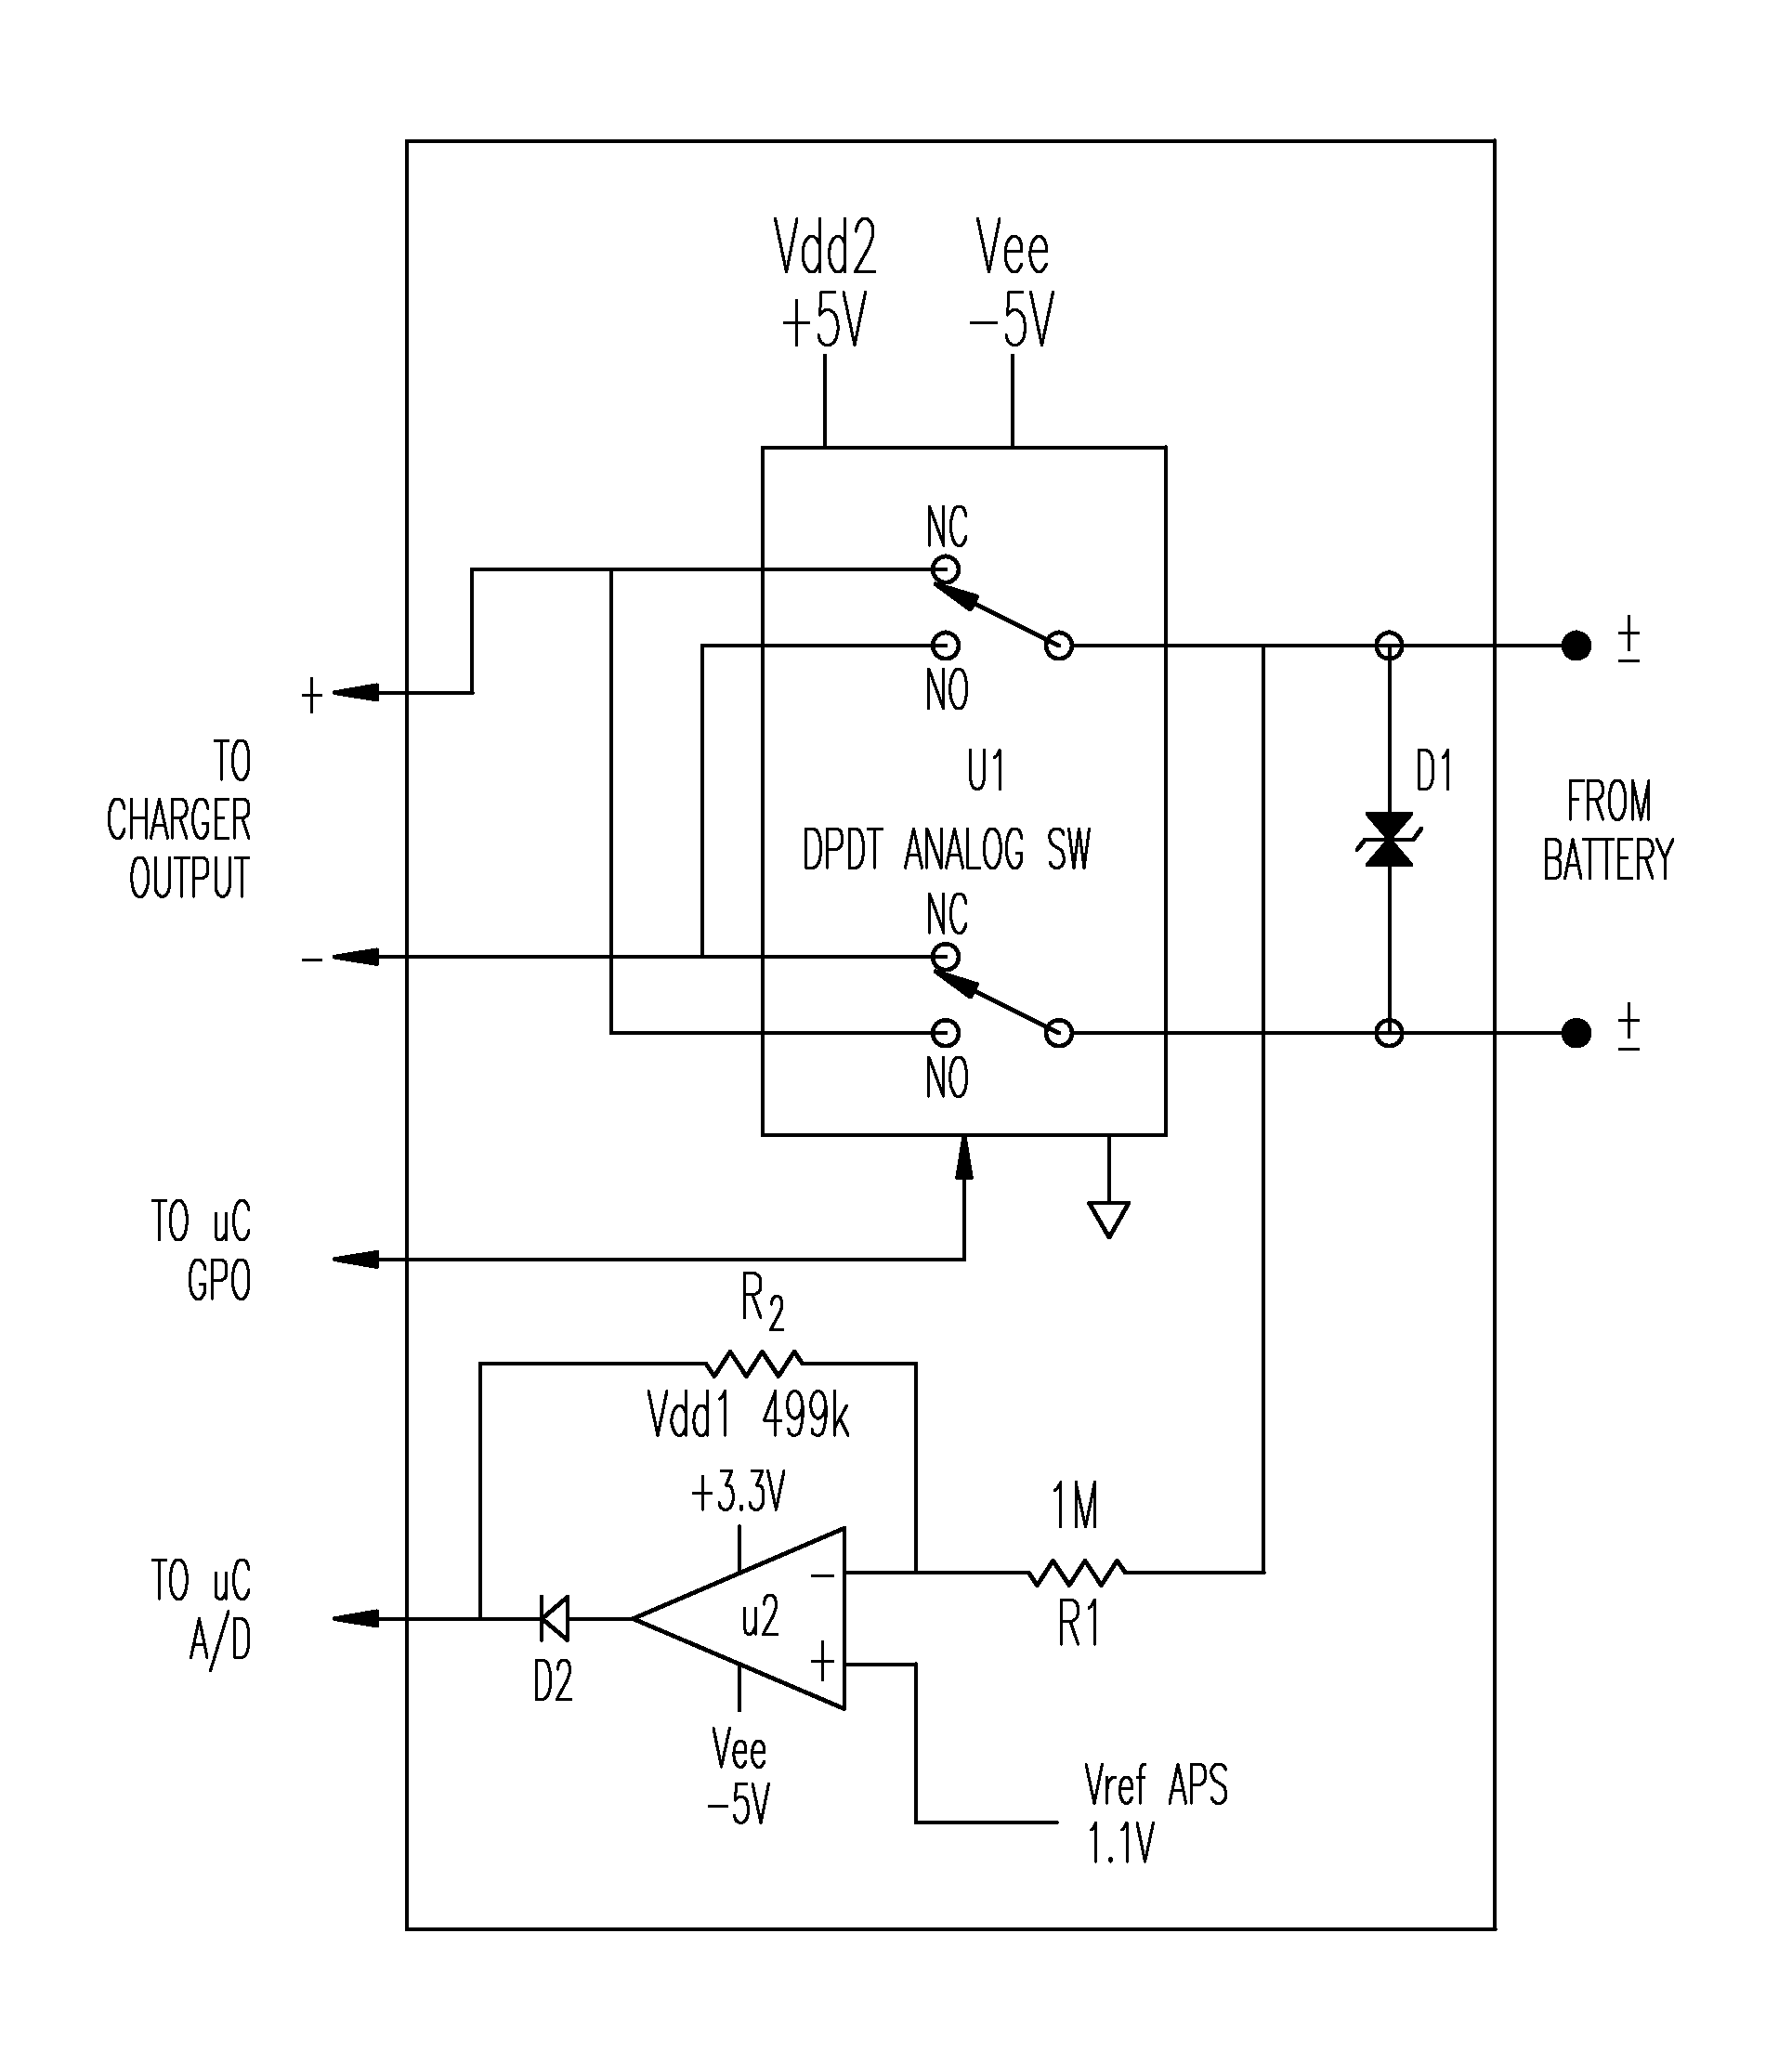 The Polarity Control Relay Is Switched Off When Q1 Covered By Analytics For Us Patent No 9263903 Detecting And Switching Battery Controlled Using An Output Of Microcontroller To Present Proper Charging Circuit Based On Unipolar Voltage